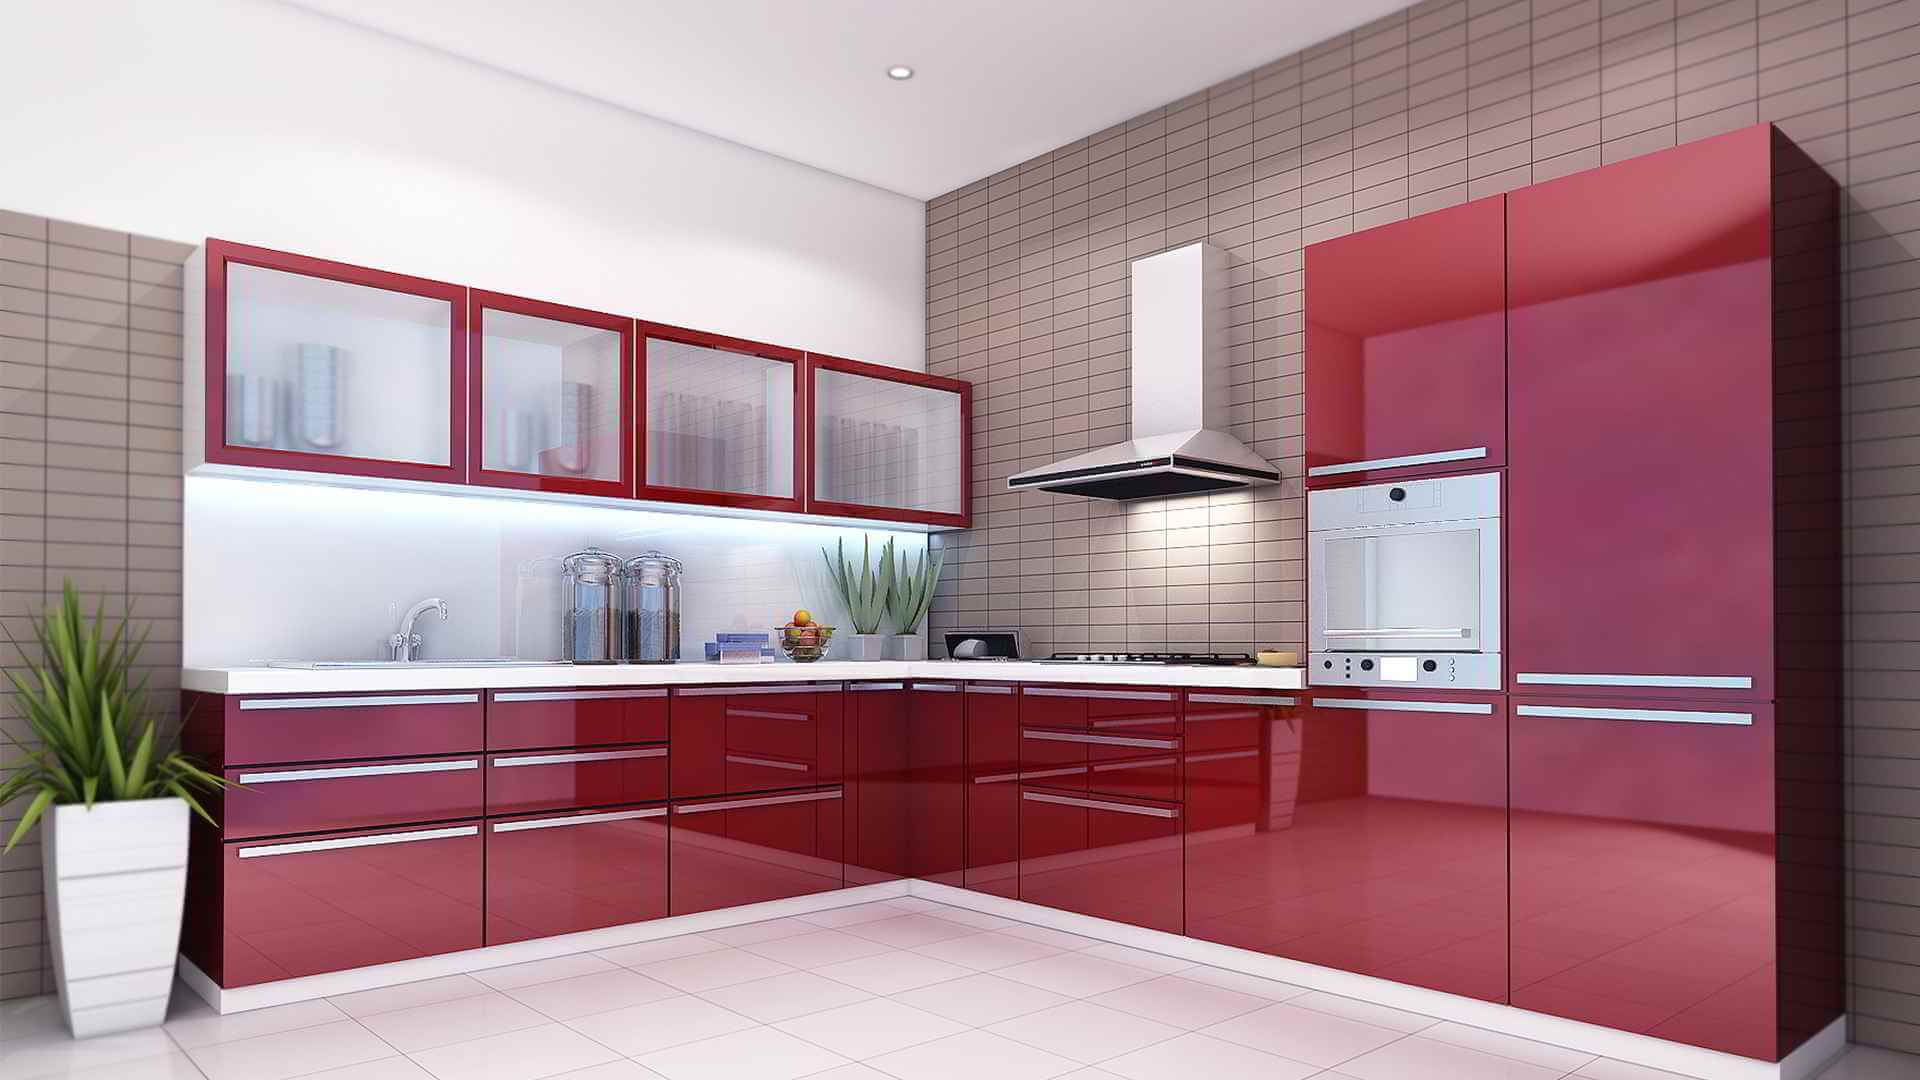 having a modern kitchen